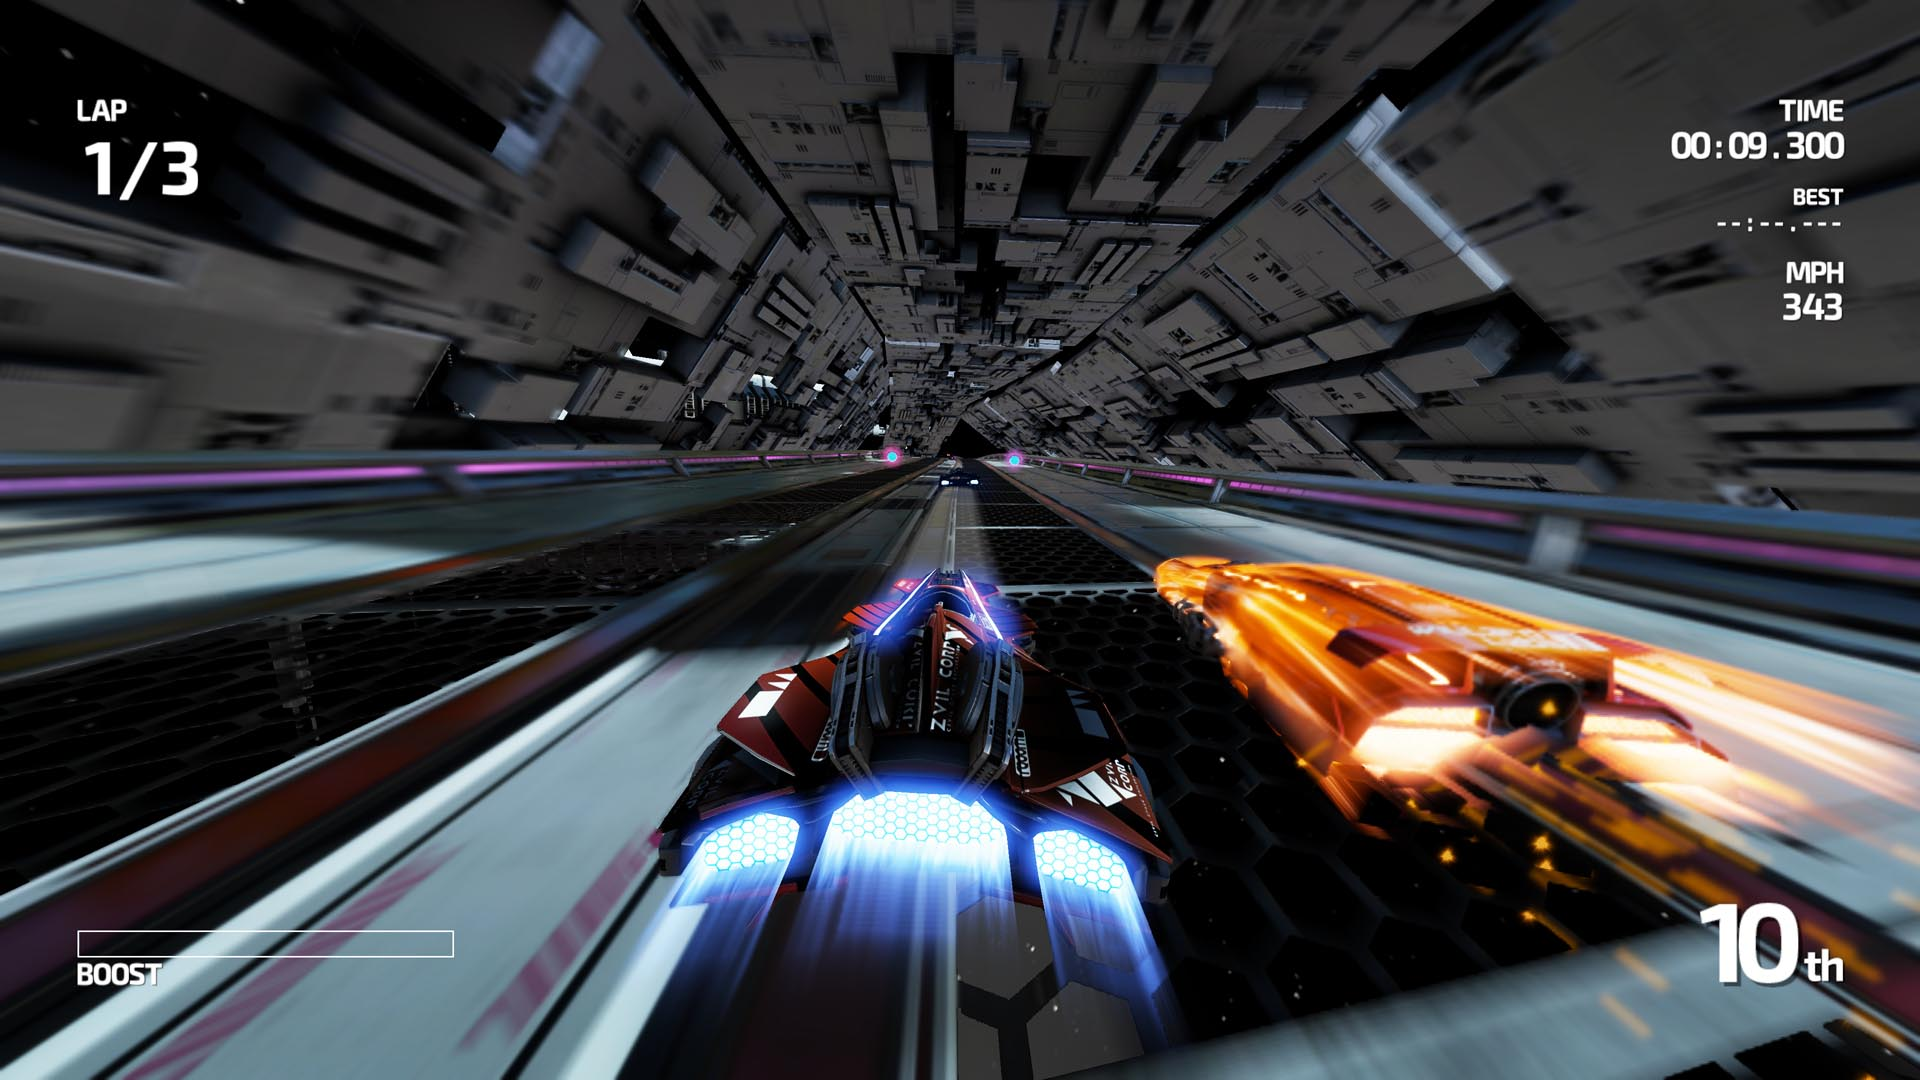 Fast Racing Neo is pretty and detailed for a Wii U game running at 60 frames per second.